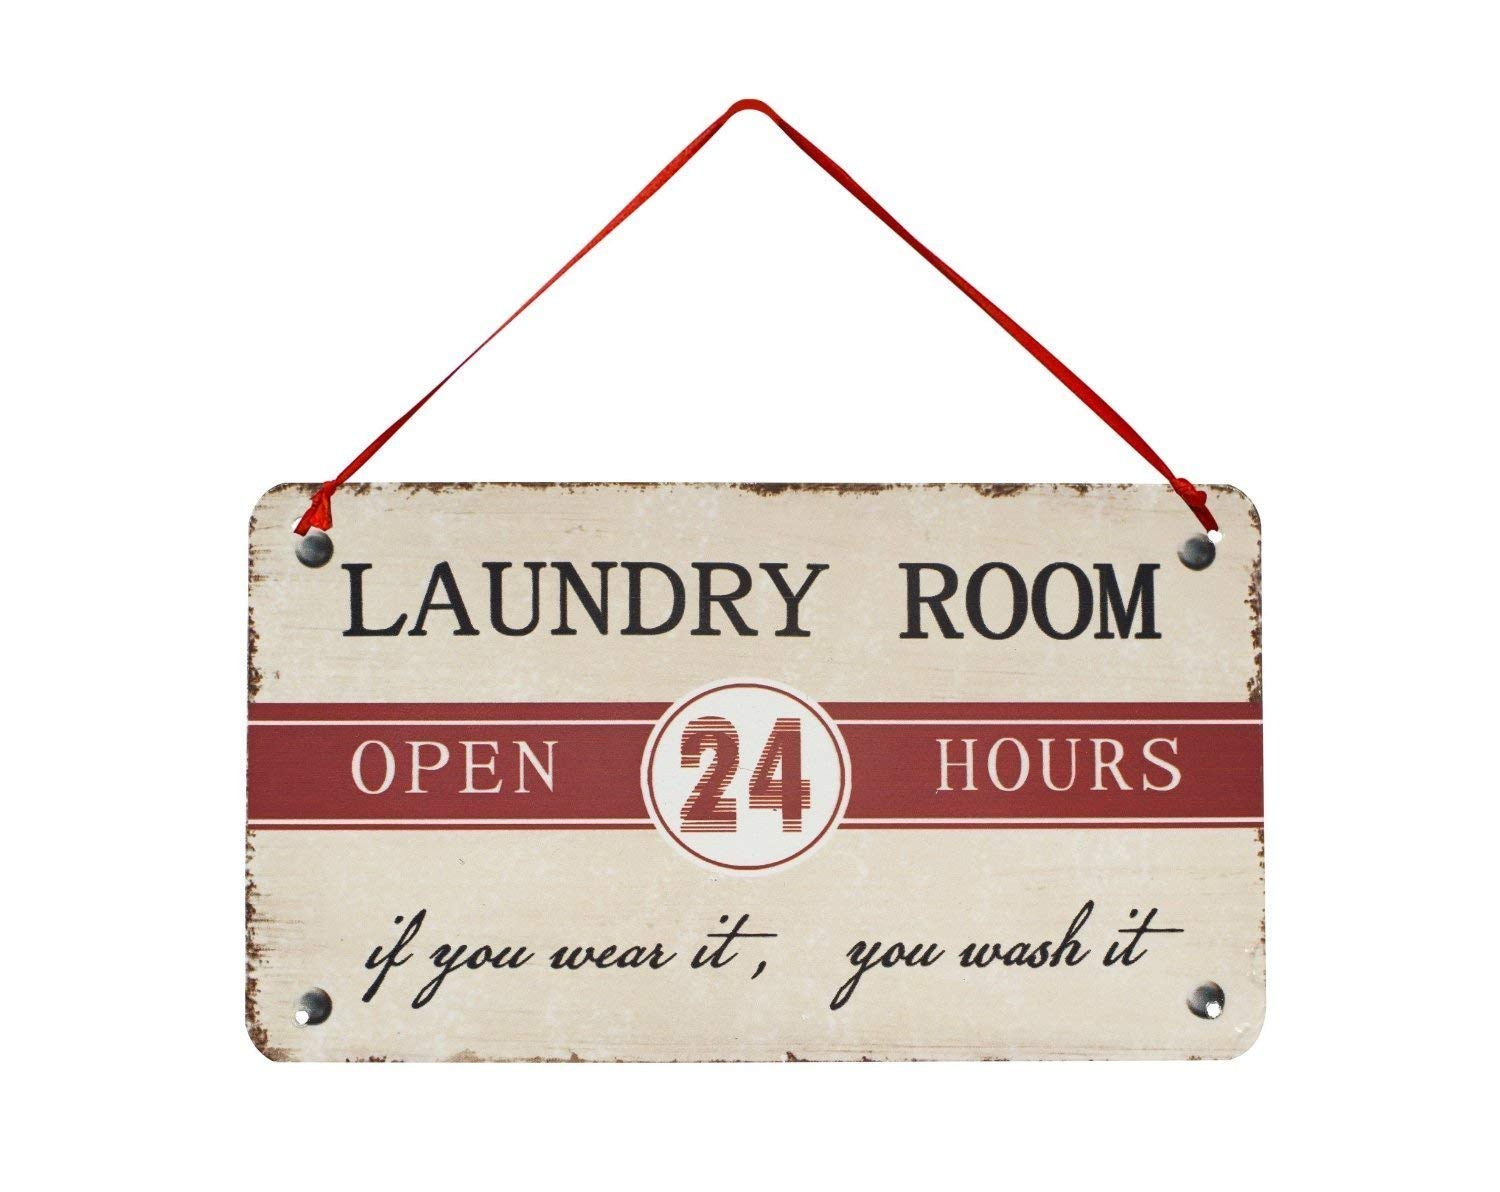 Rainbow Handcrafts Rustic Laundry Room Metal Sign Laundy Room Wall Decor Vintage Hanging Laundy Room Sign for Home Decoration 8x5.5 inch